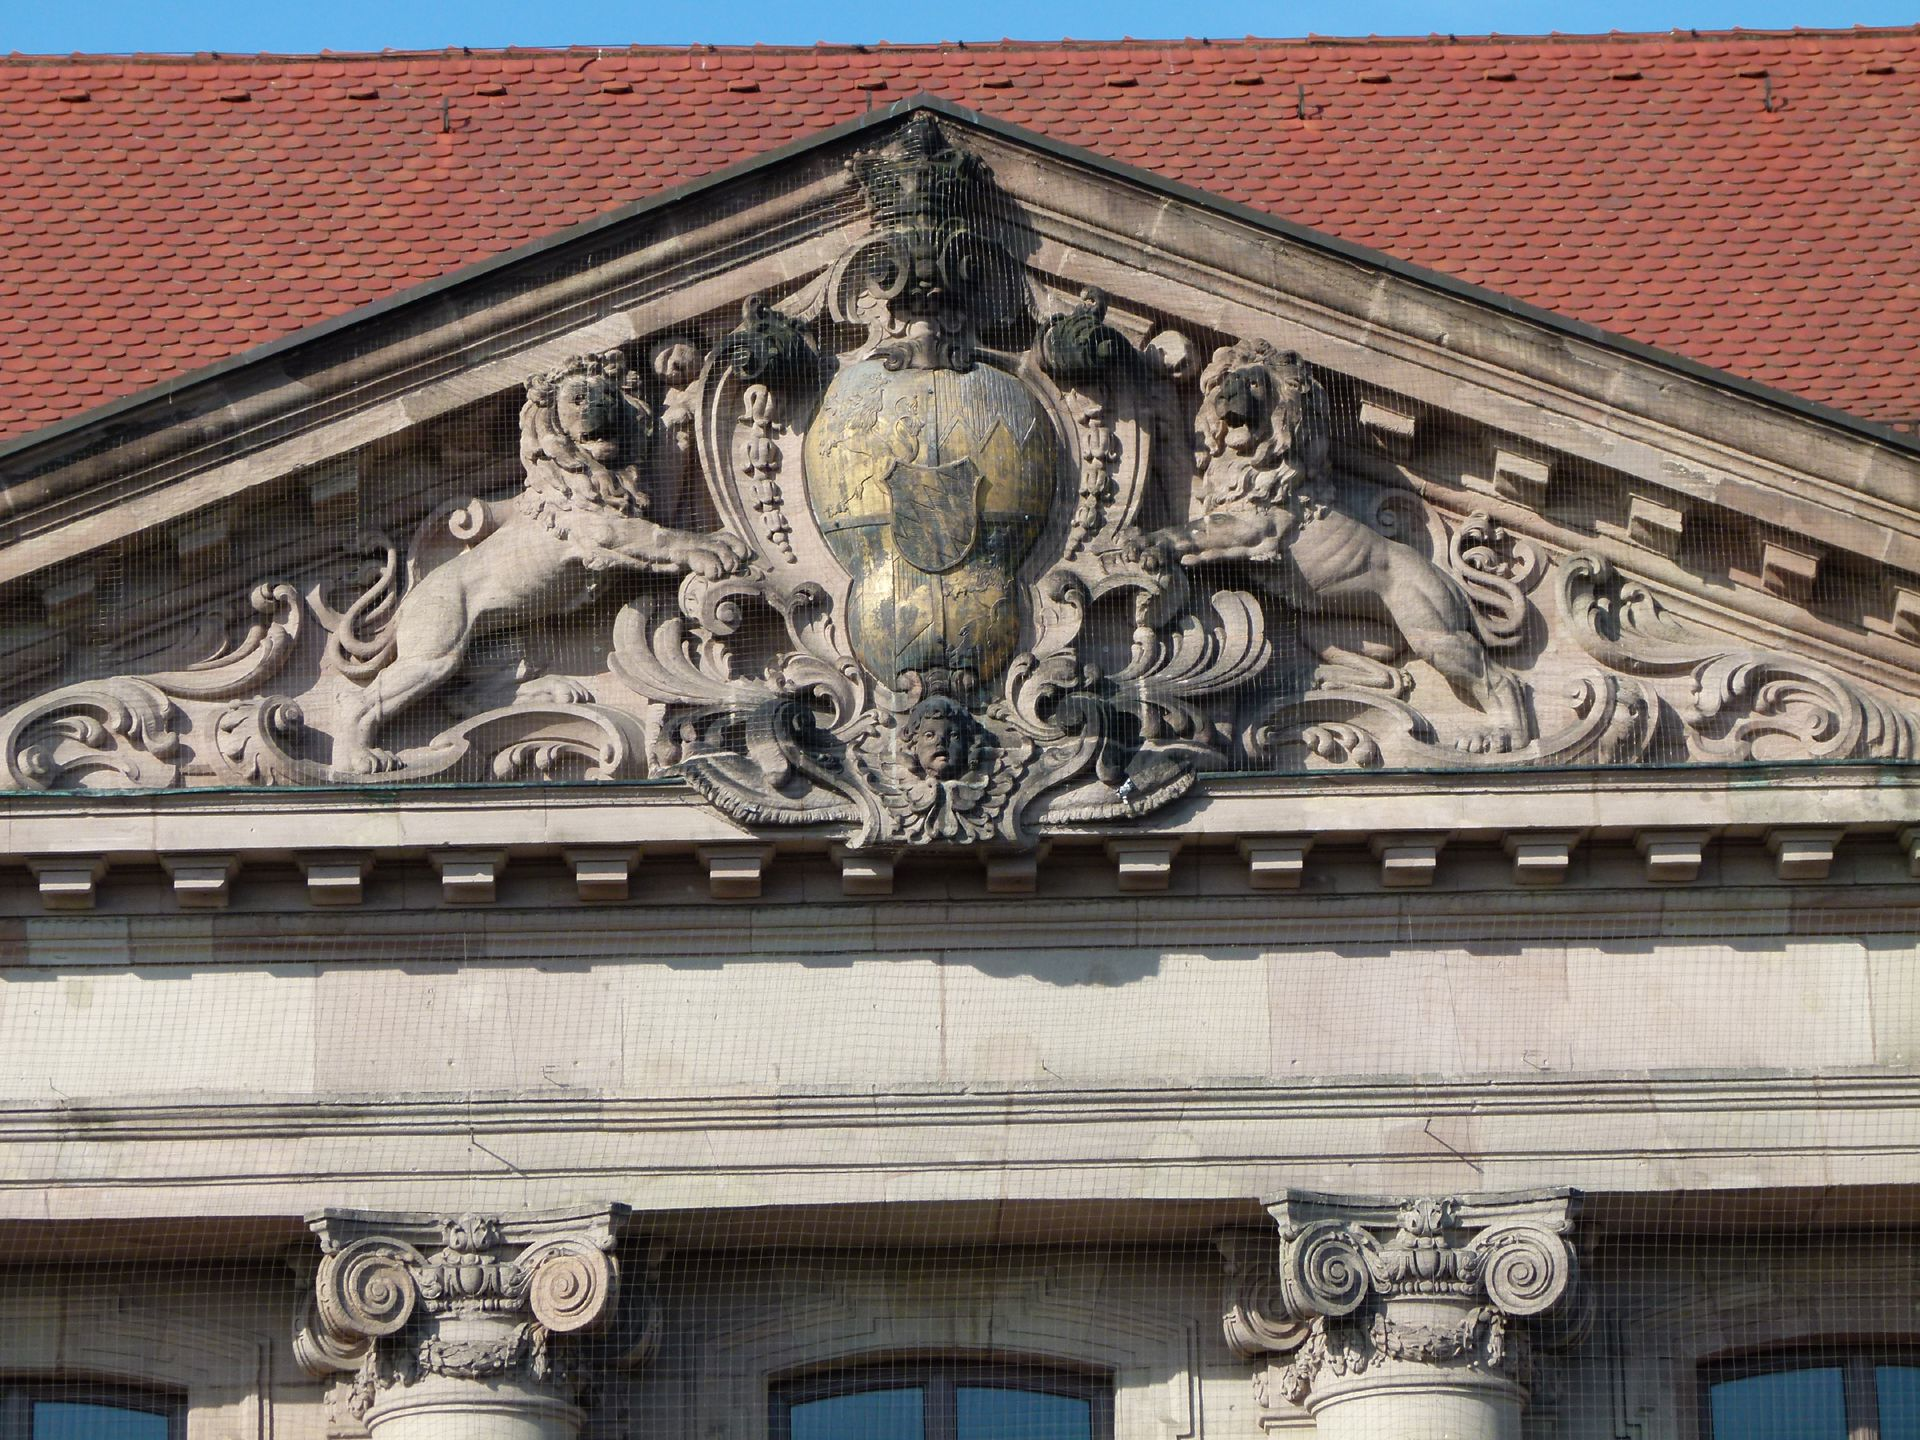 Former Bavarian Trade and Business Institute (Landesgewerbeanstalt) Main entrance front, northeast, gable with coat of arms carried by lions